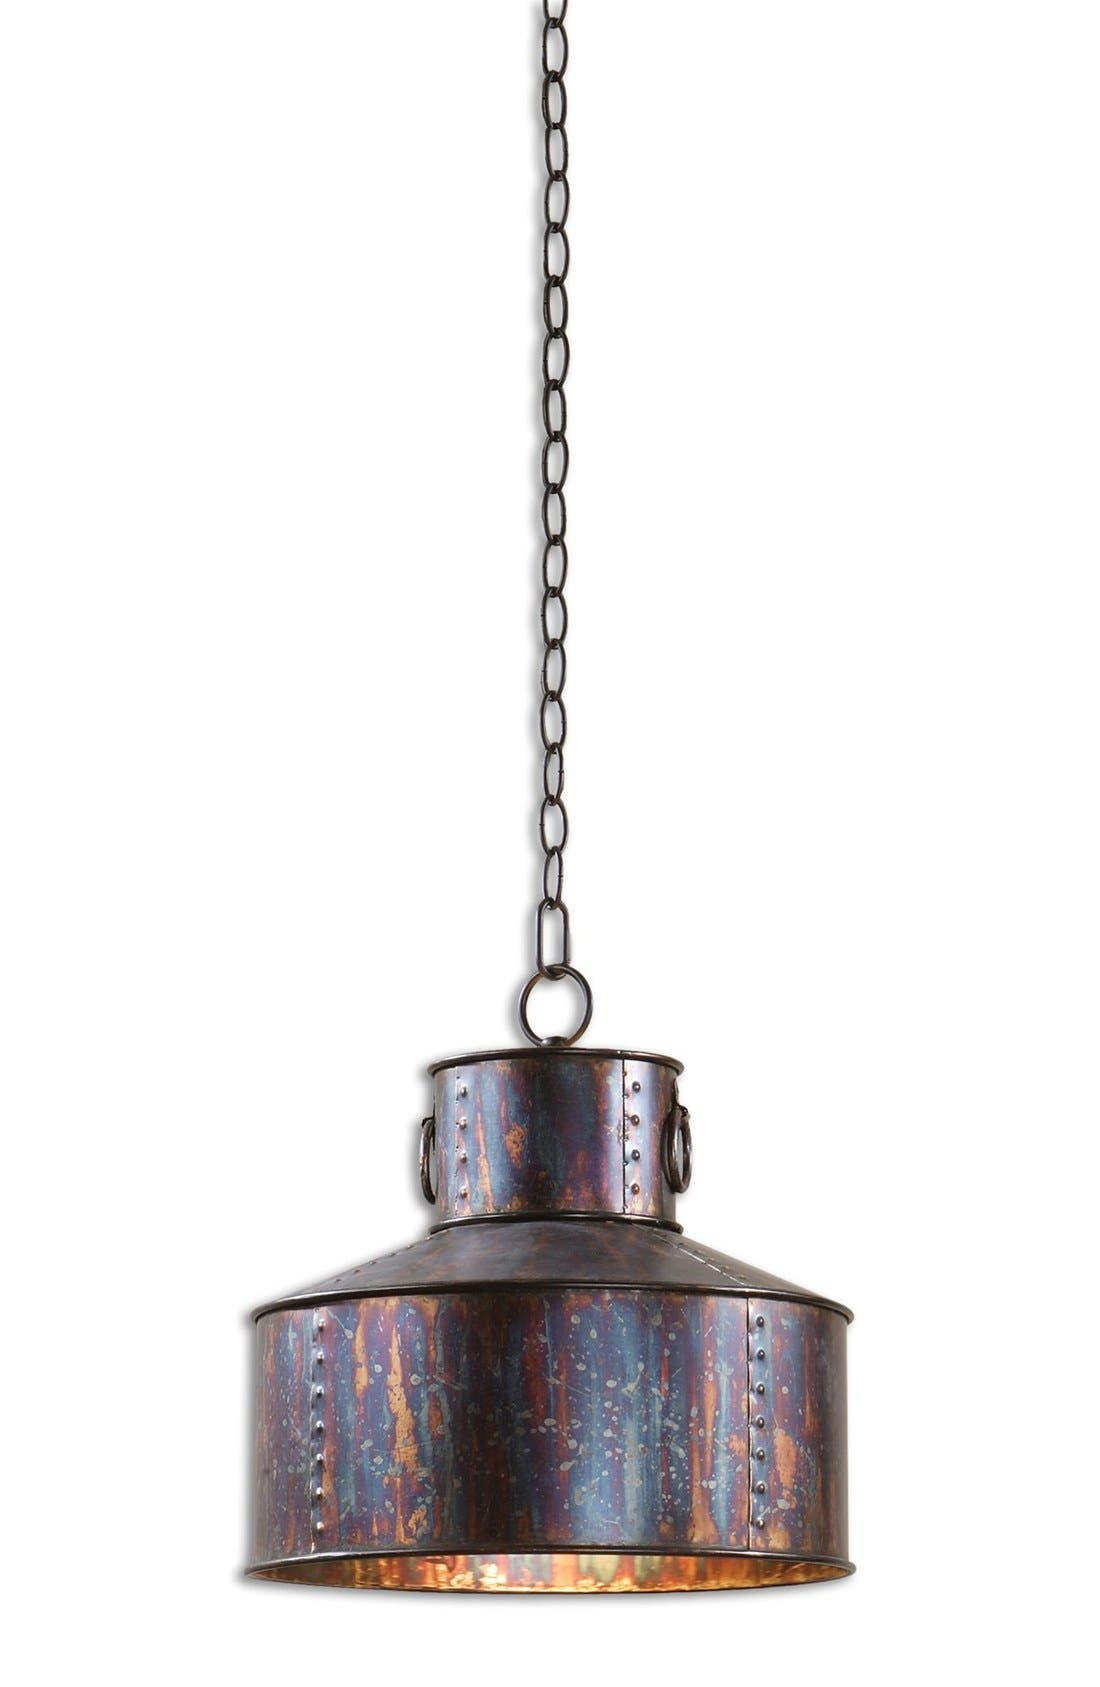 Alternate Image 1 Selected - Uttermost 'Giaveno' Pendant Light